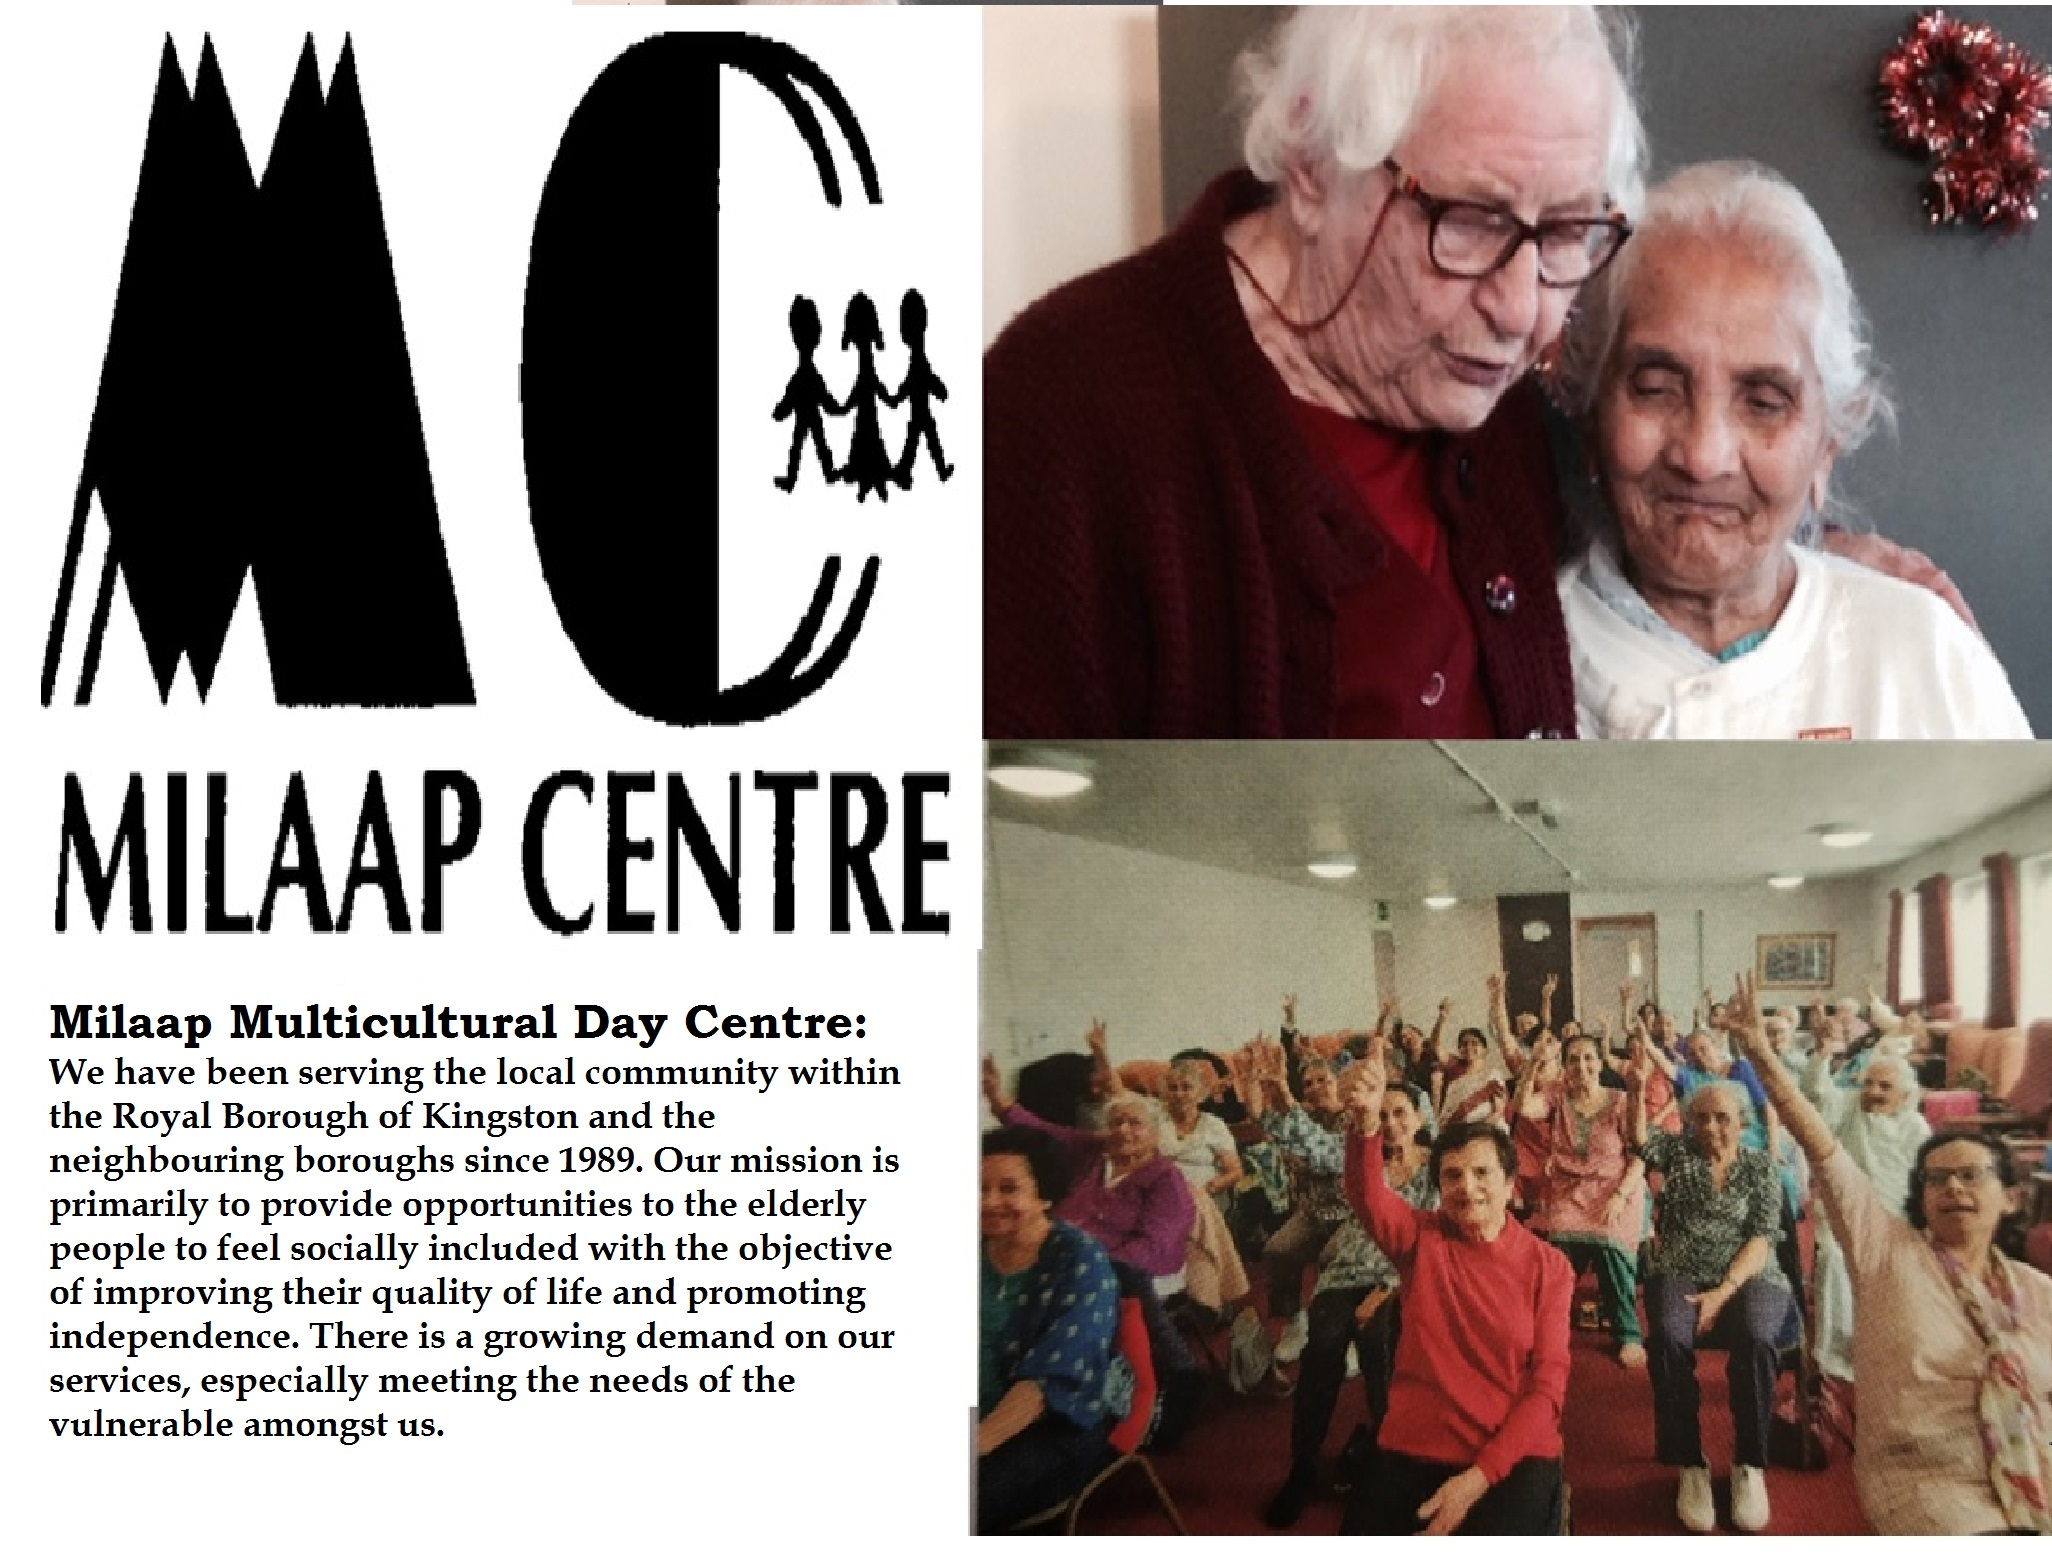 COVID-19 Crisis - Milaap Multicultural Day Centre - We need your support